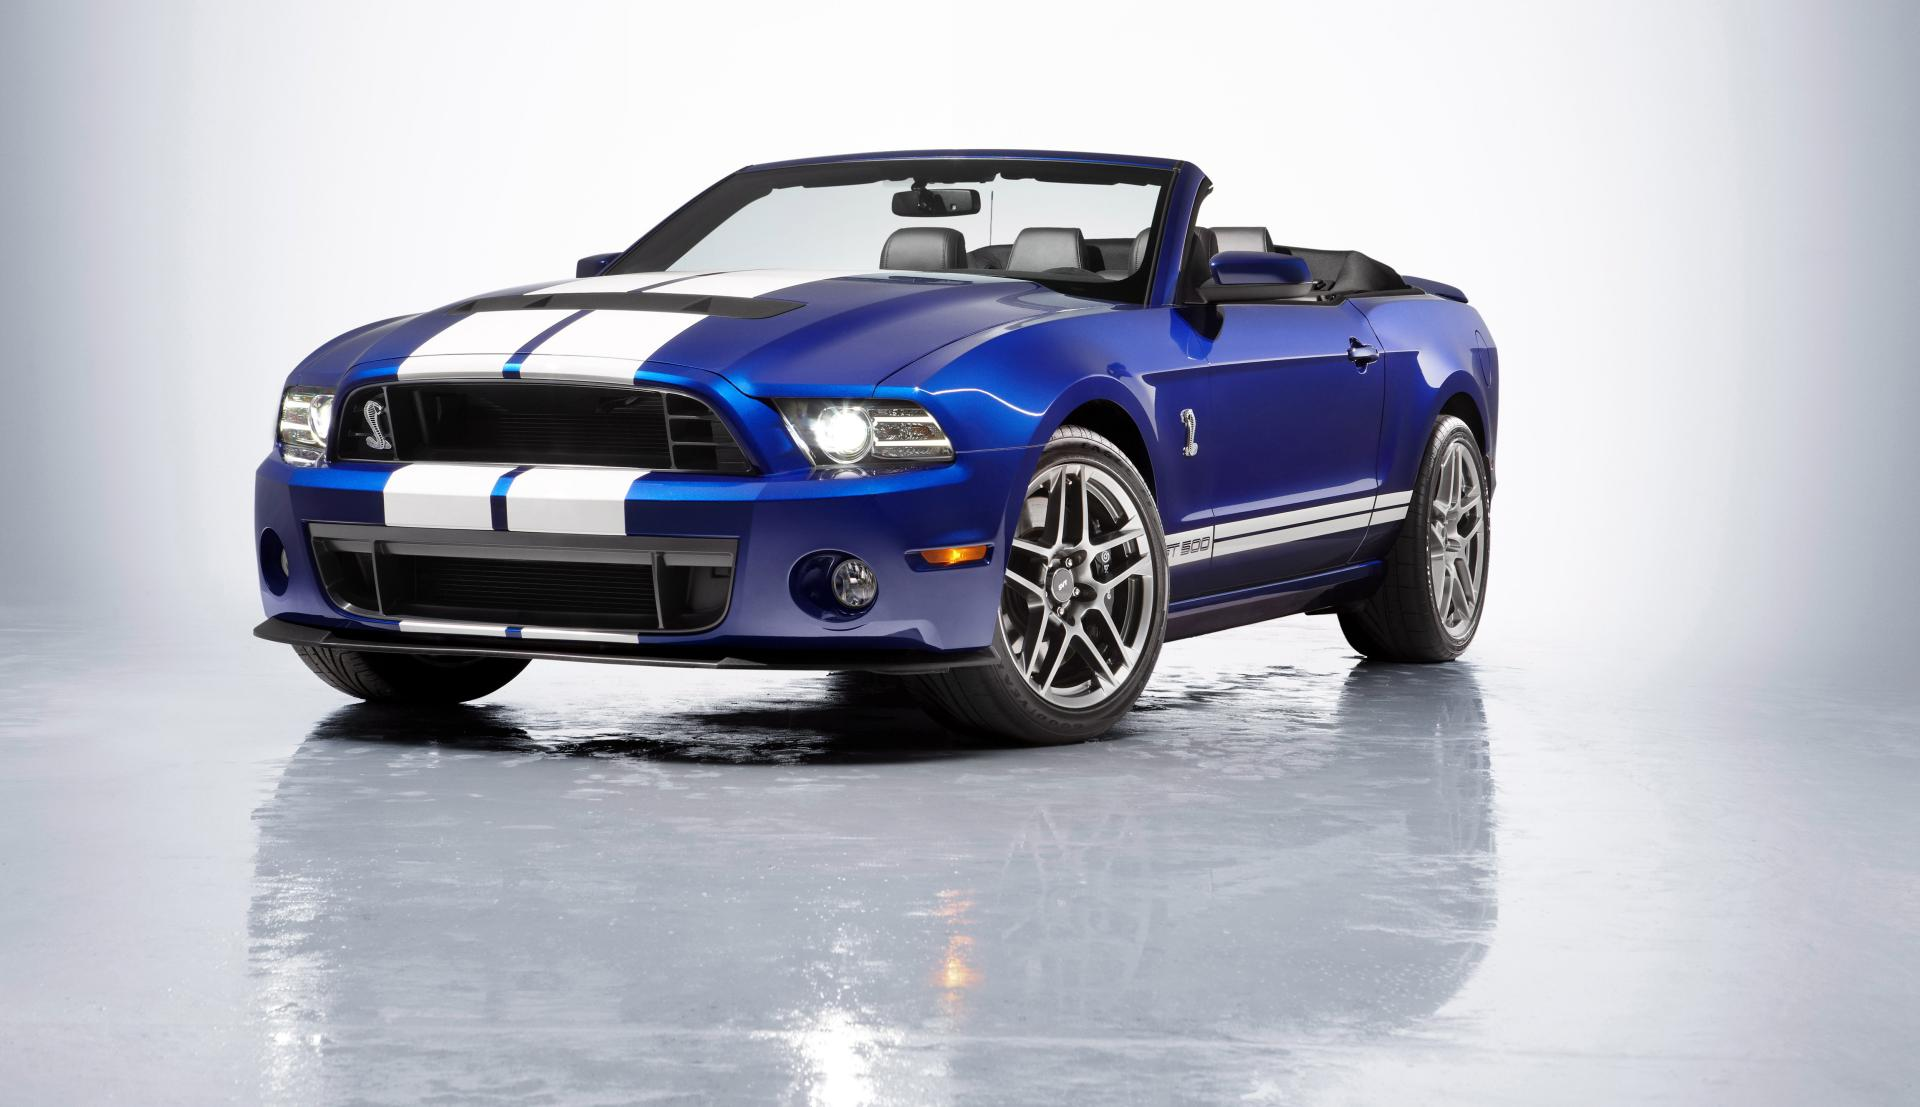 2013 Shelby Mustang GT500 Convertible News and Information